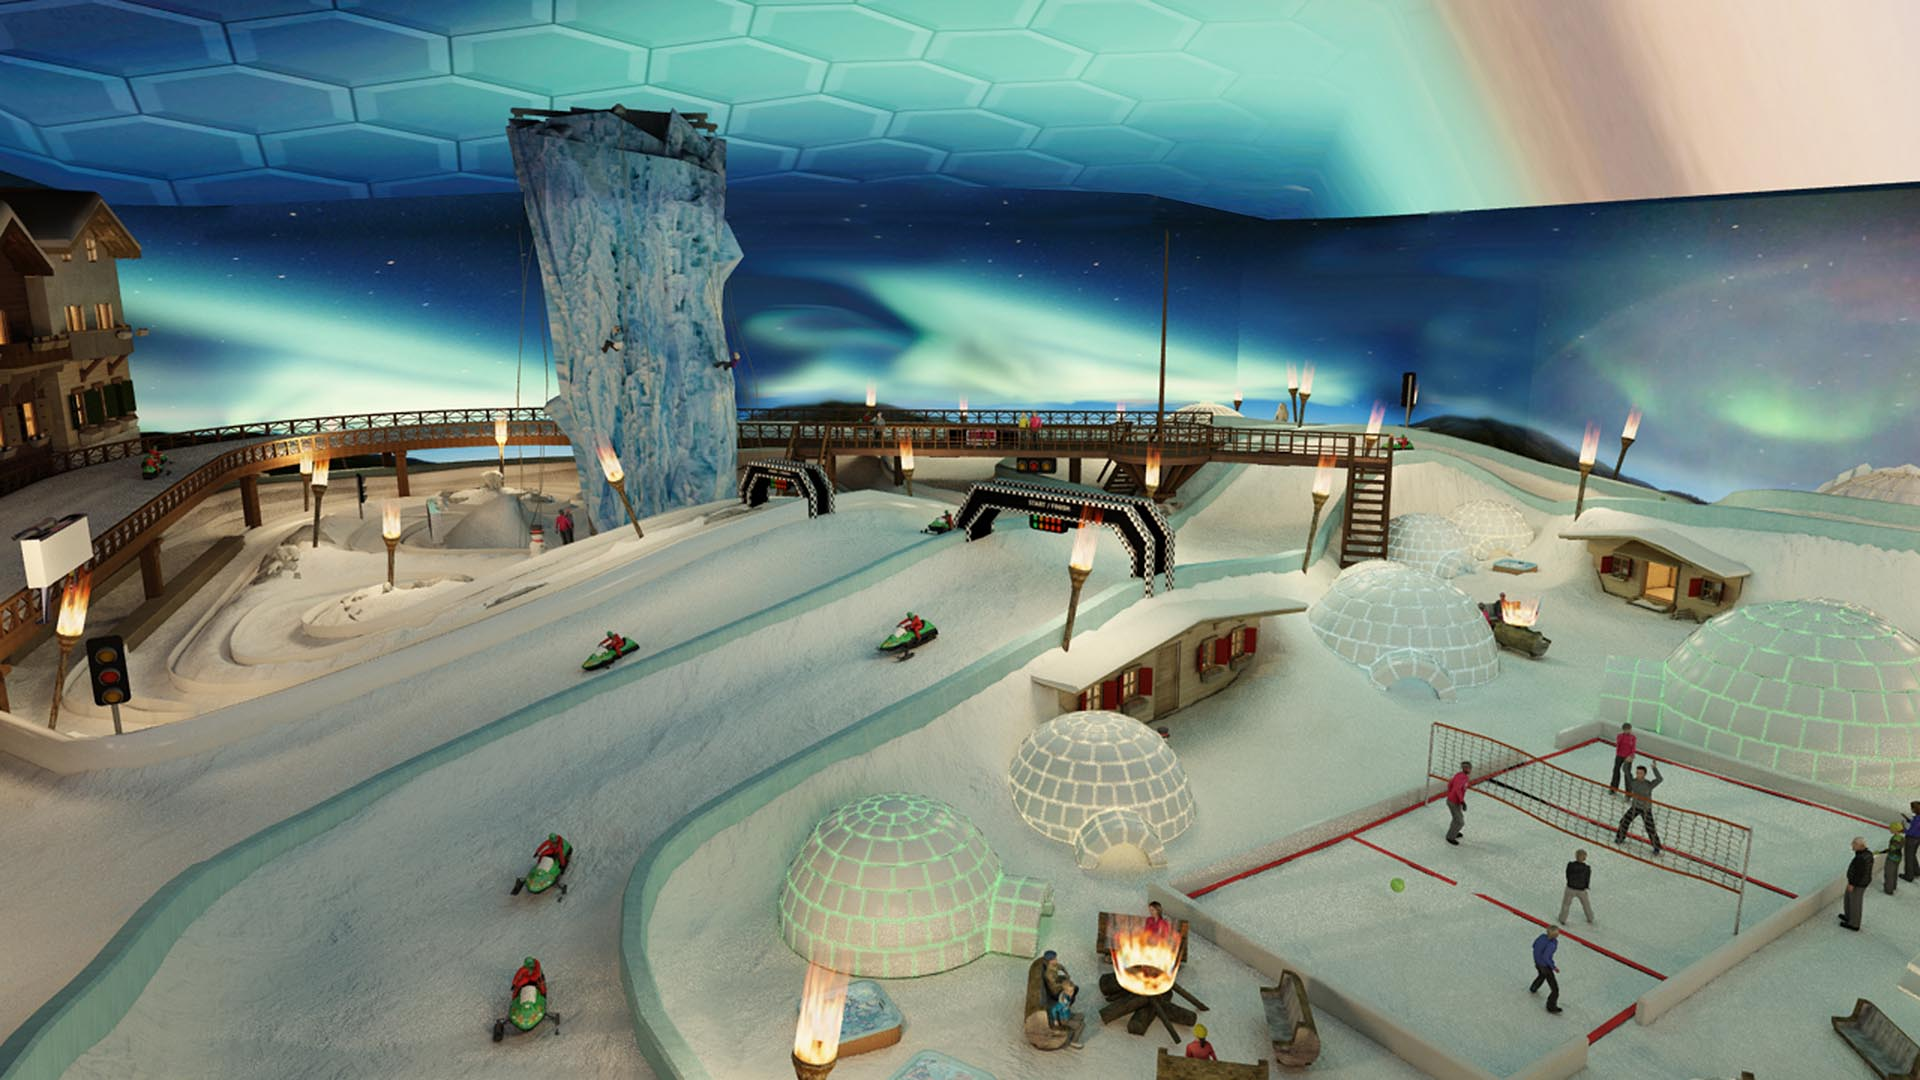 An Exciting Patented Indoor Snow Circuit and Igloo Village